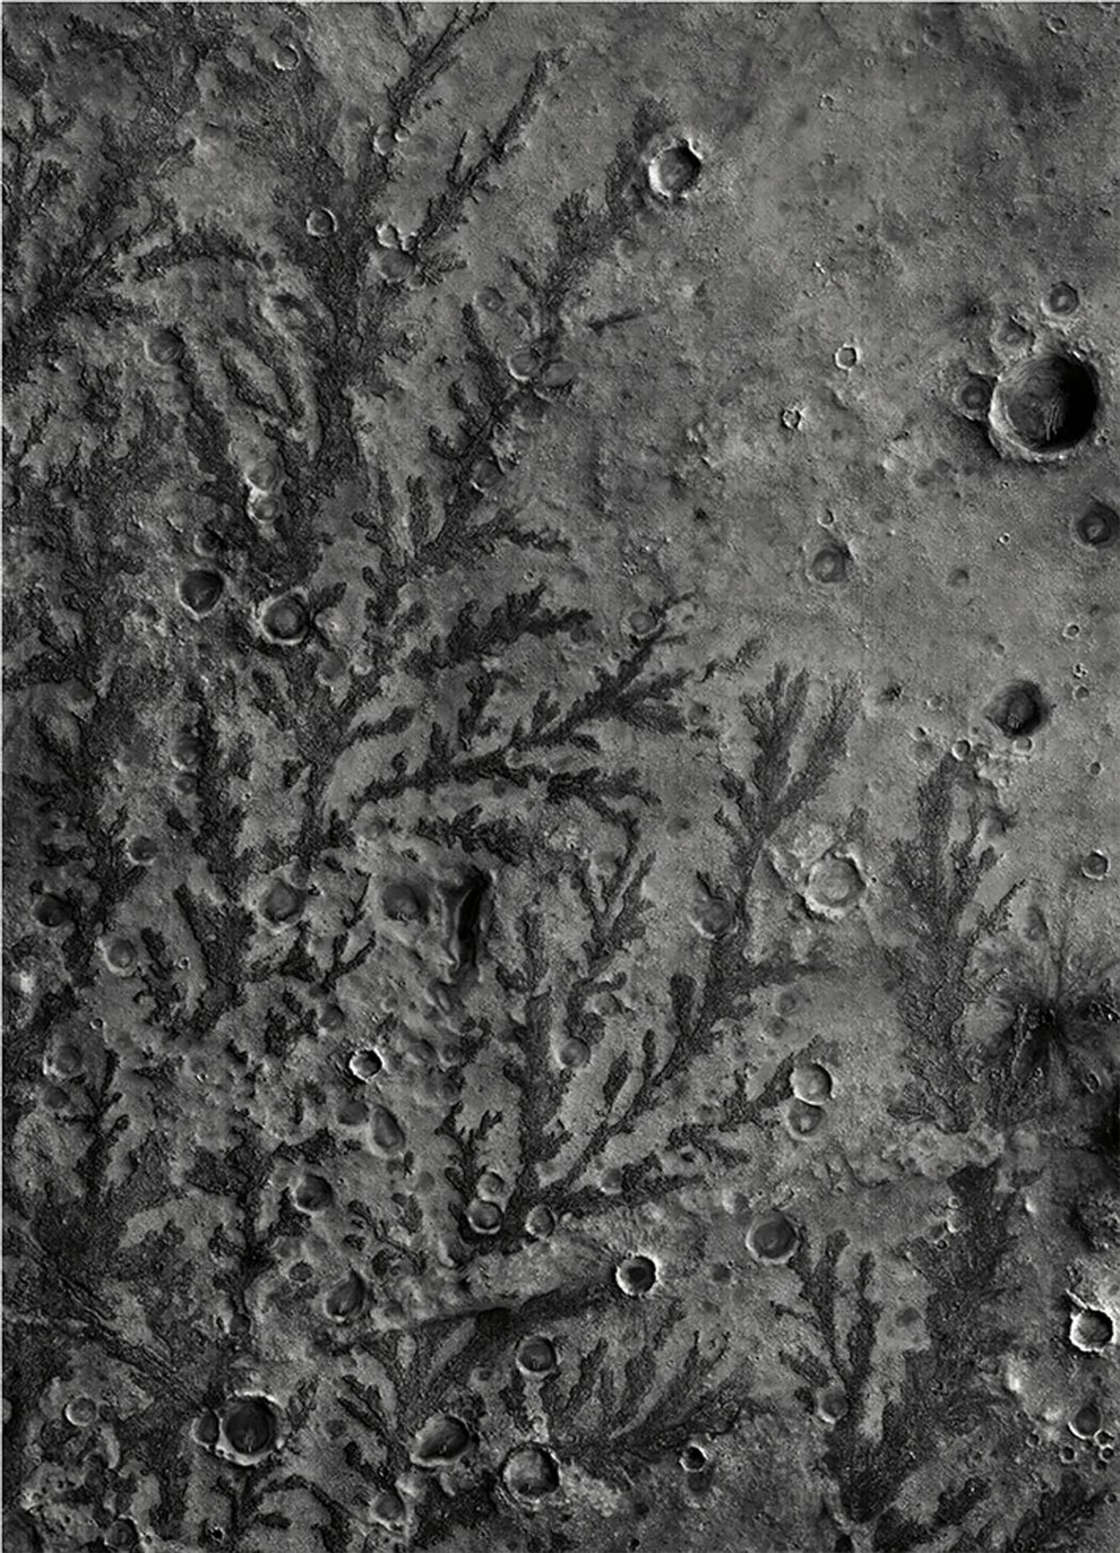 This Is Mars – Some amazing black and white photographs of Mars